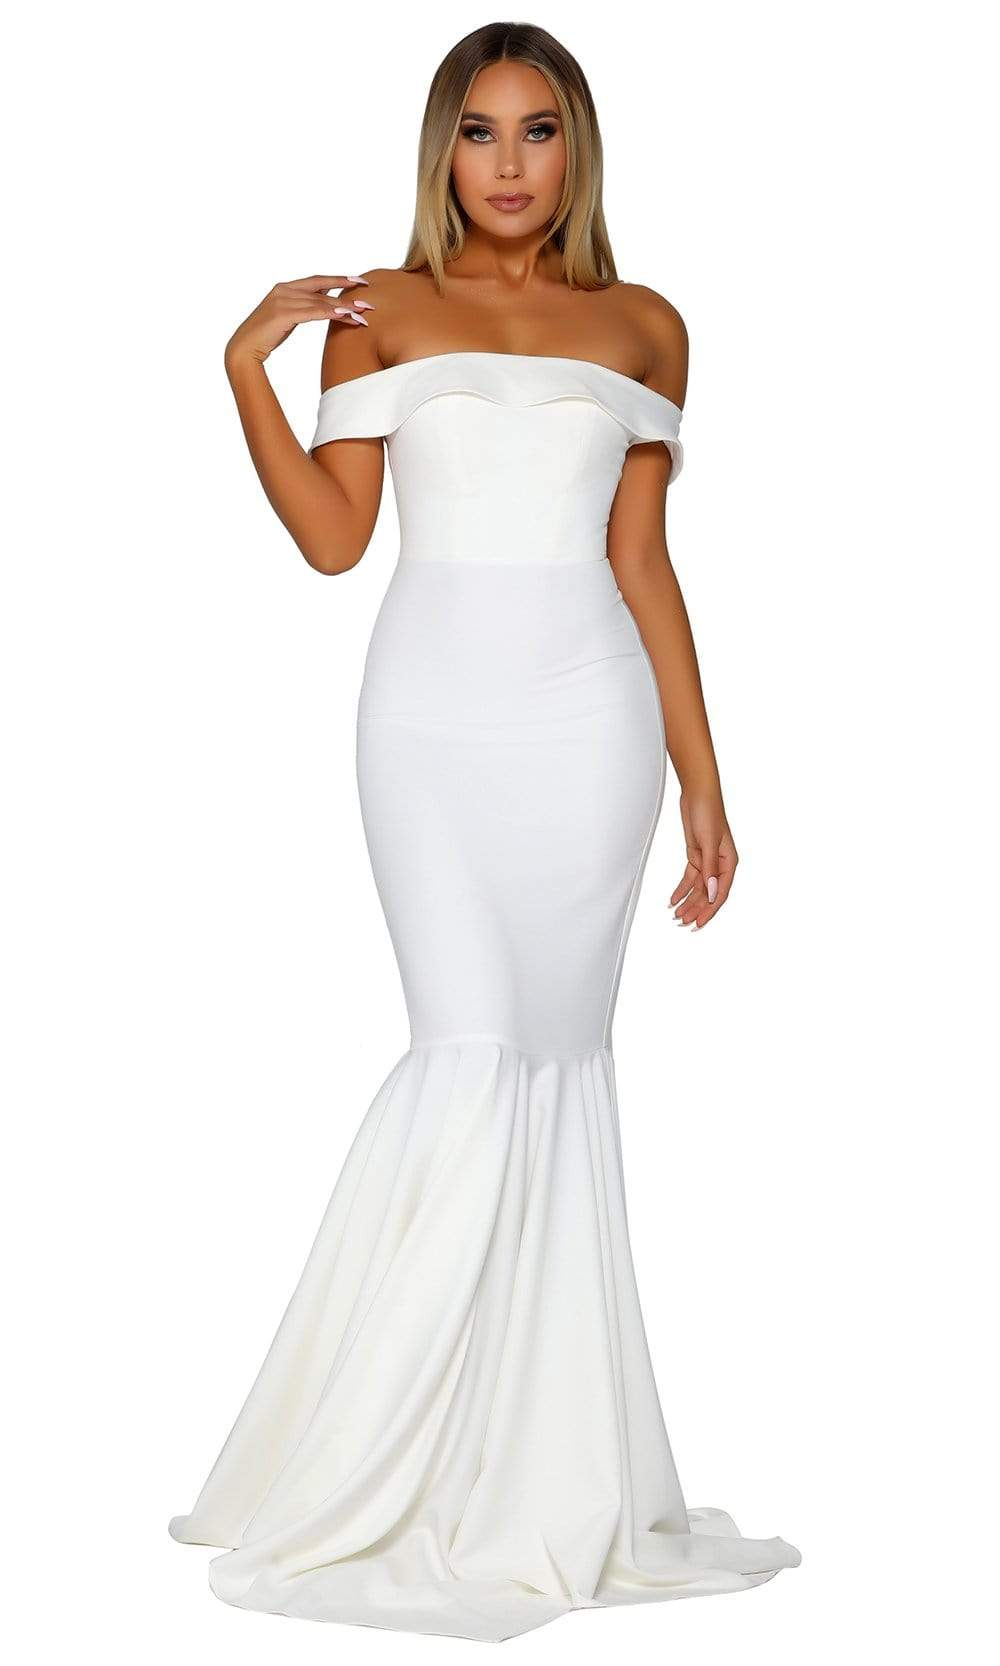 Portia and Scarlett - PS6370 Foldover Off Shoulder Mermaid Gown from Portia and Scarlett